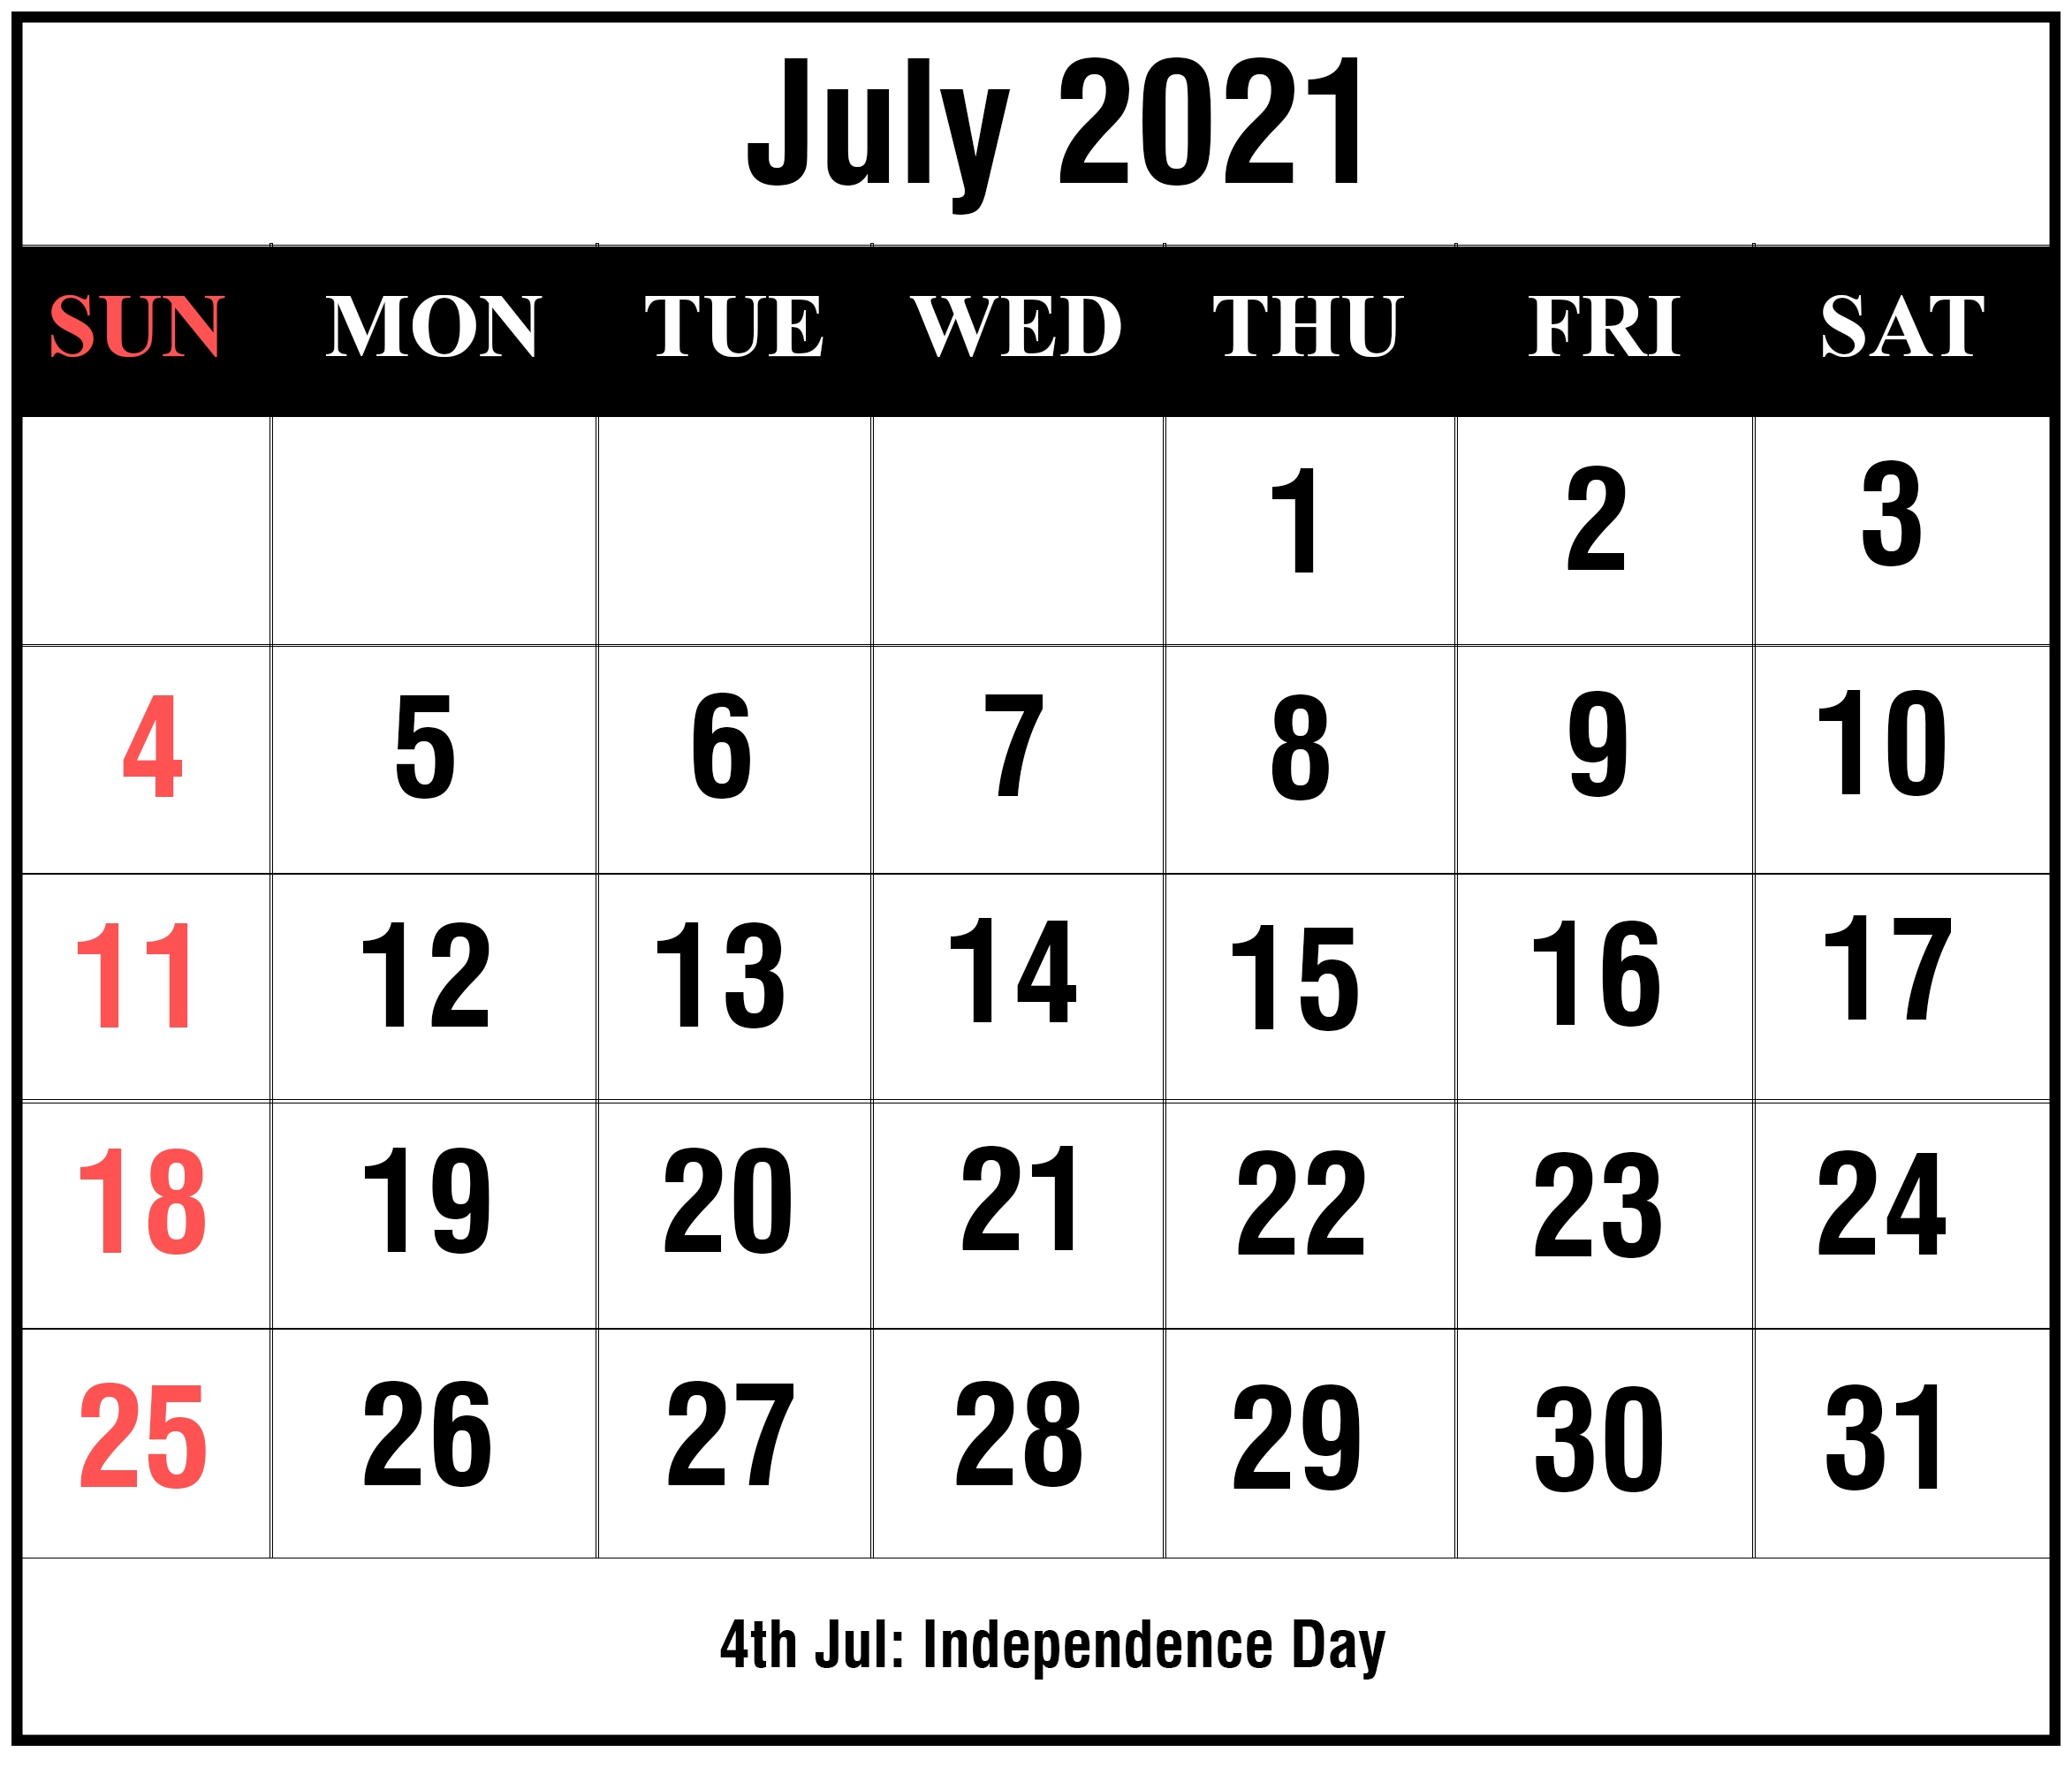 Free Editable Calendar 2021 July For All Users